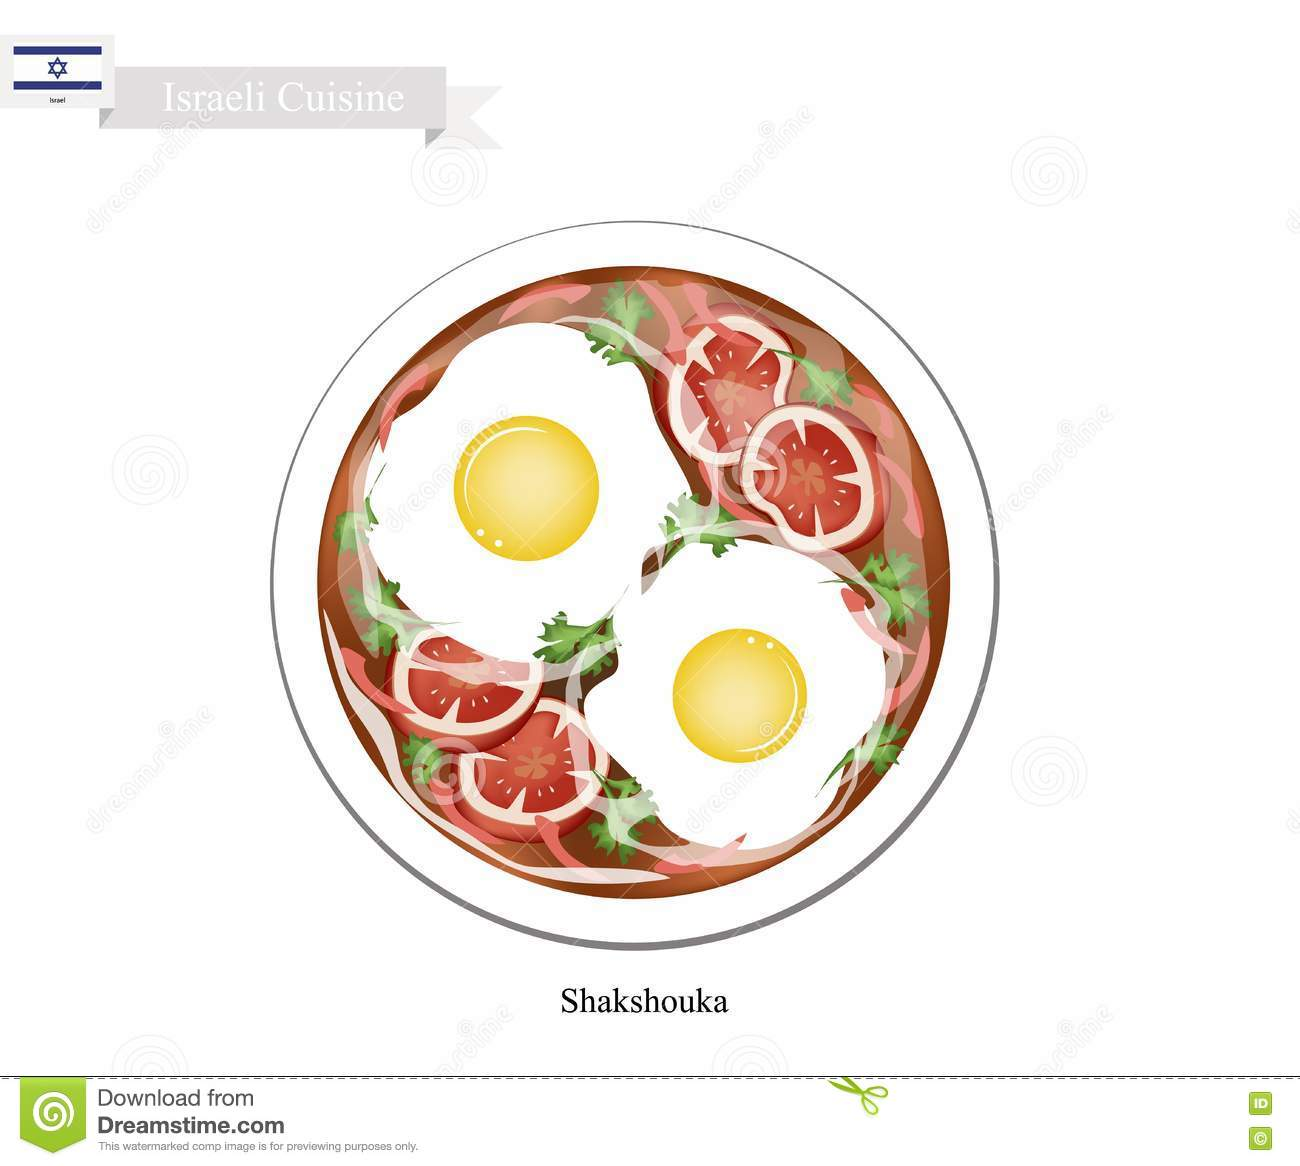 Israeli Cuisine, Shakshouka or Traditional eggs poached with Tomato ...